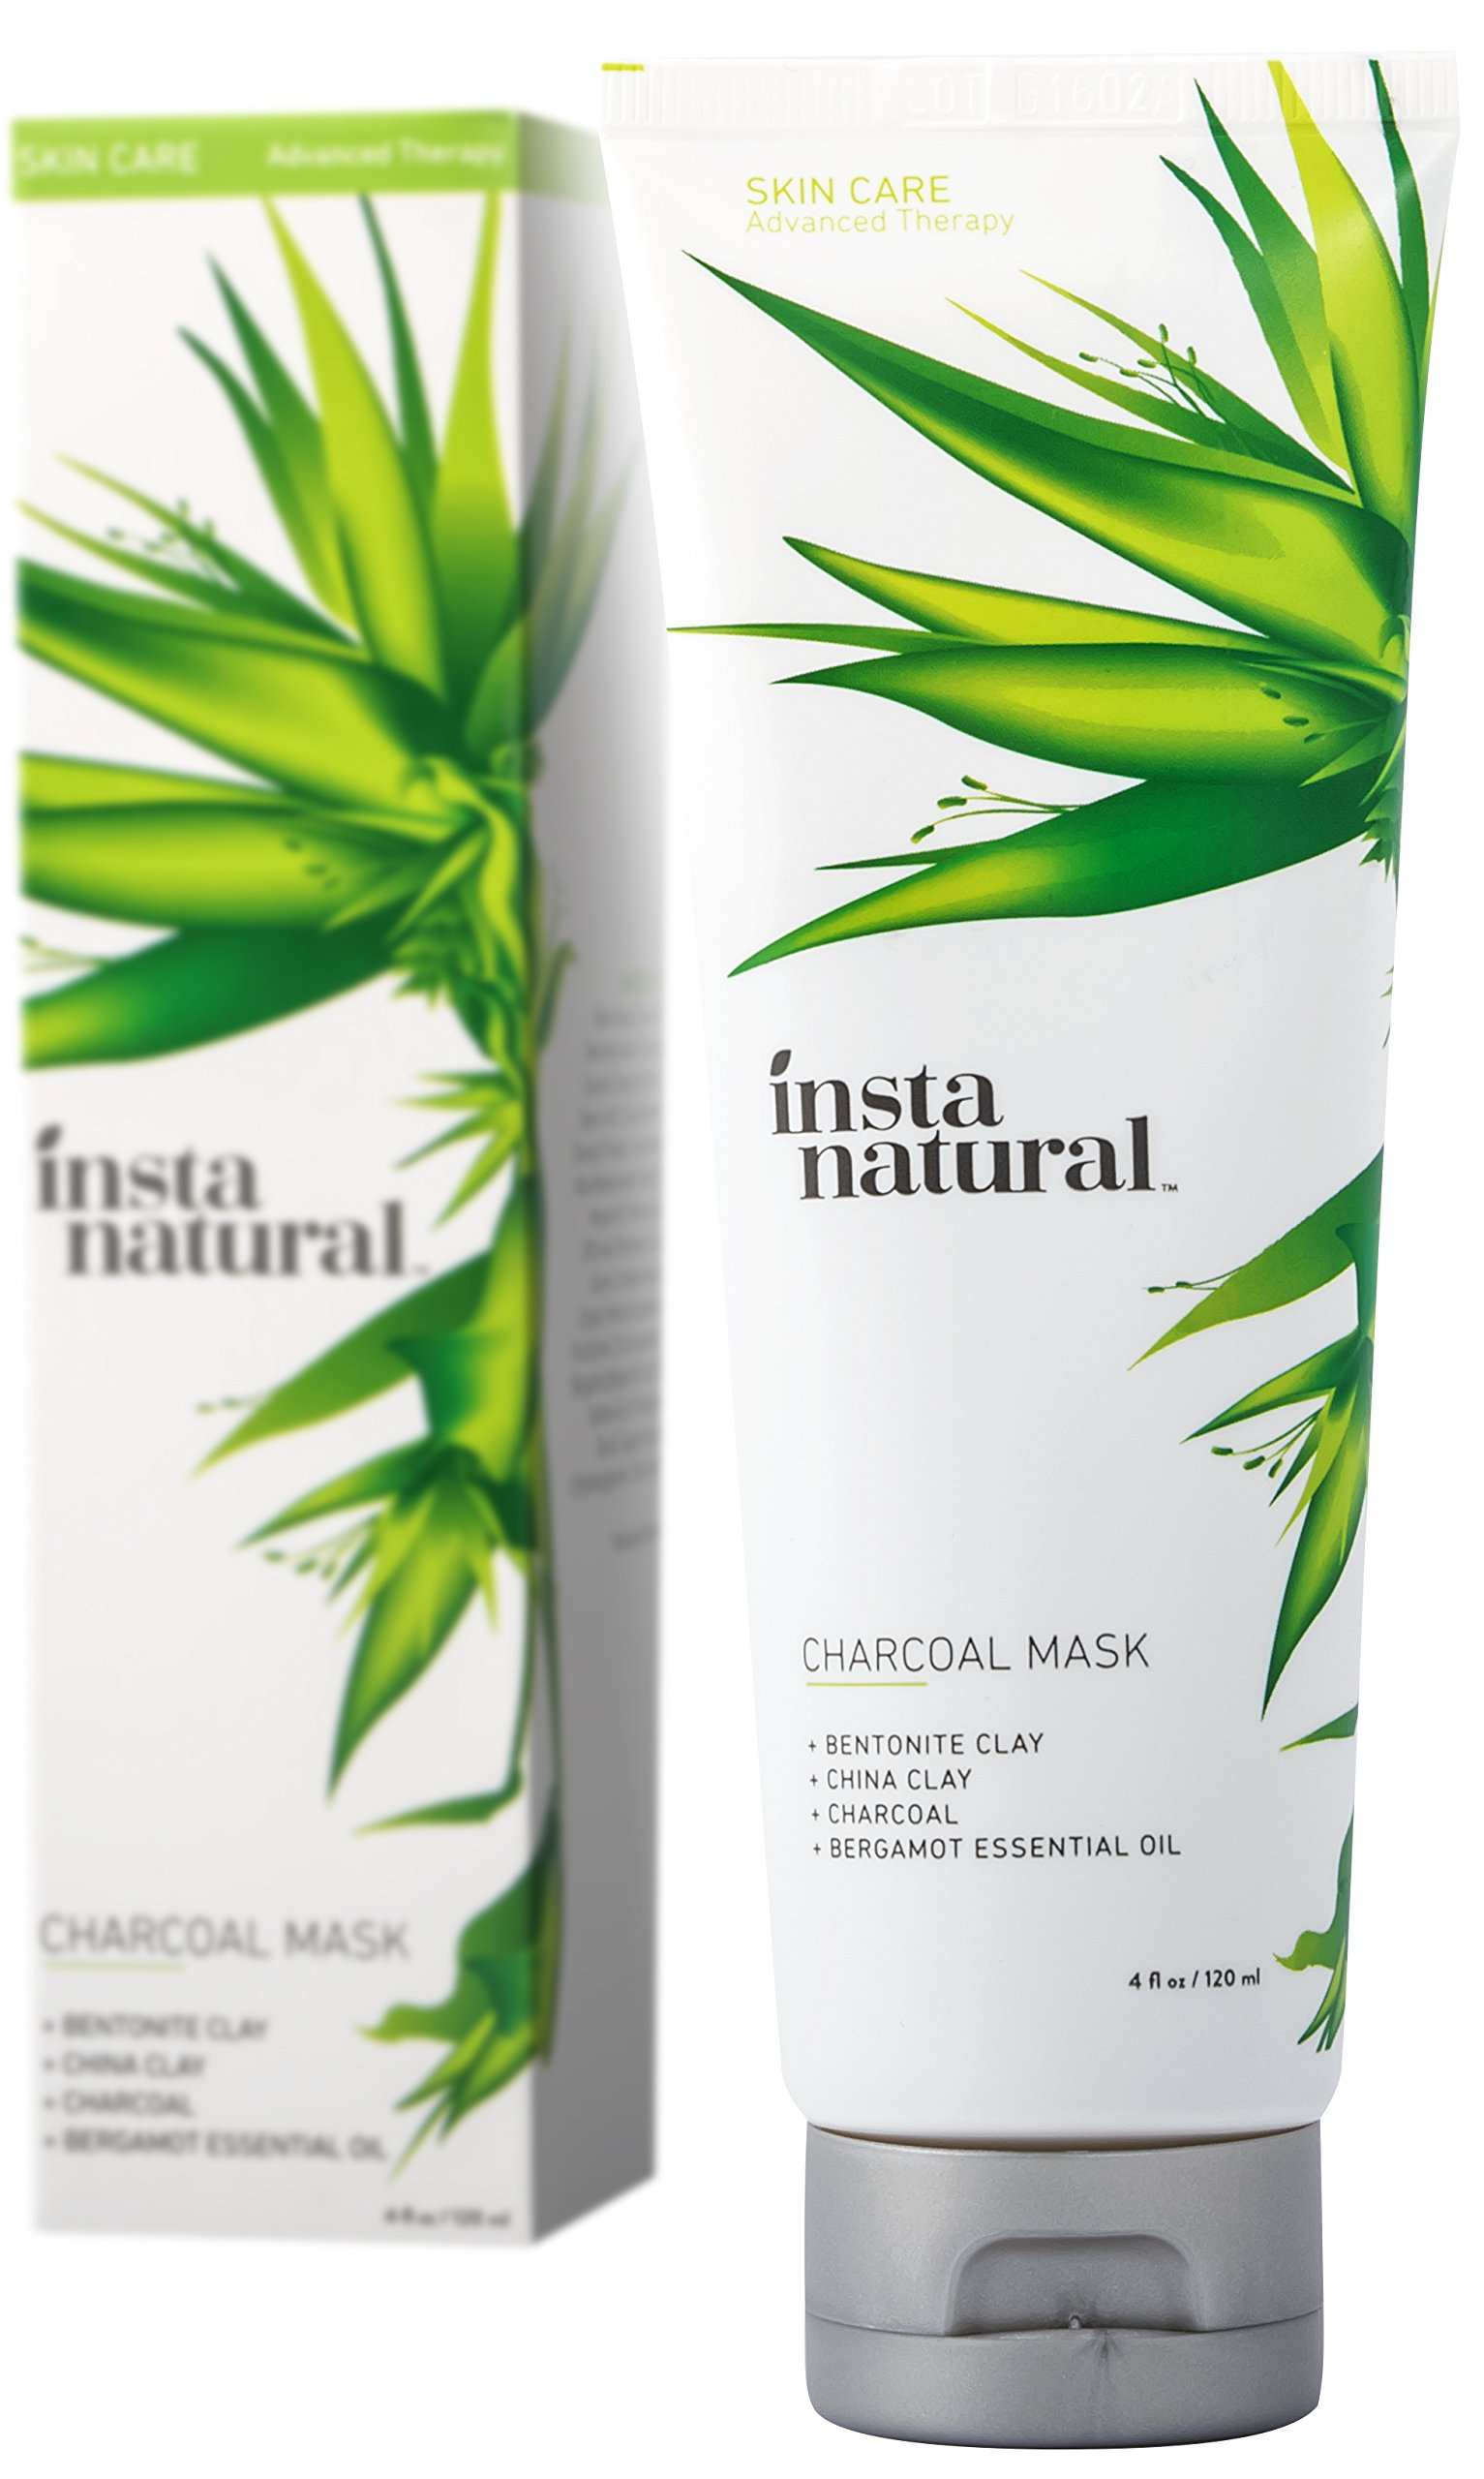 Charcoal Mask for Face - Breakout Eliminating Formula to Rid Blackheads, Unclog Facial Pores & Clear Skin - Contains Charcoal Powder & China Clay - InstaNatural - 4 OZ